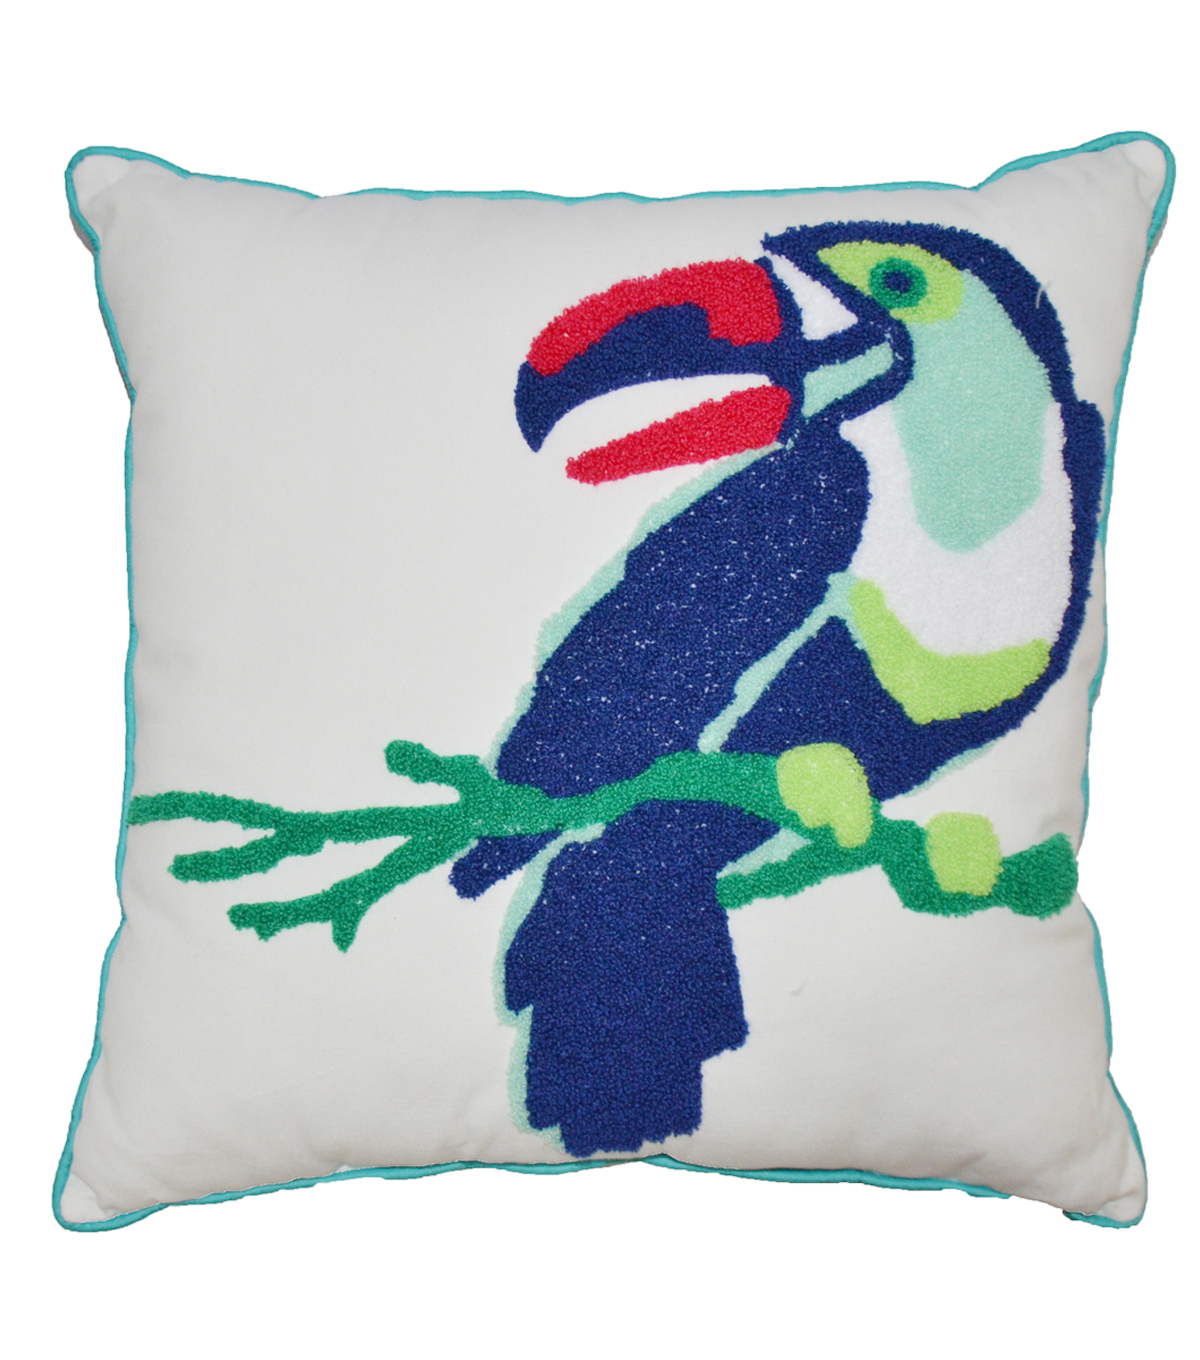 Summer Sol Embroidered Pillow-Toucan